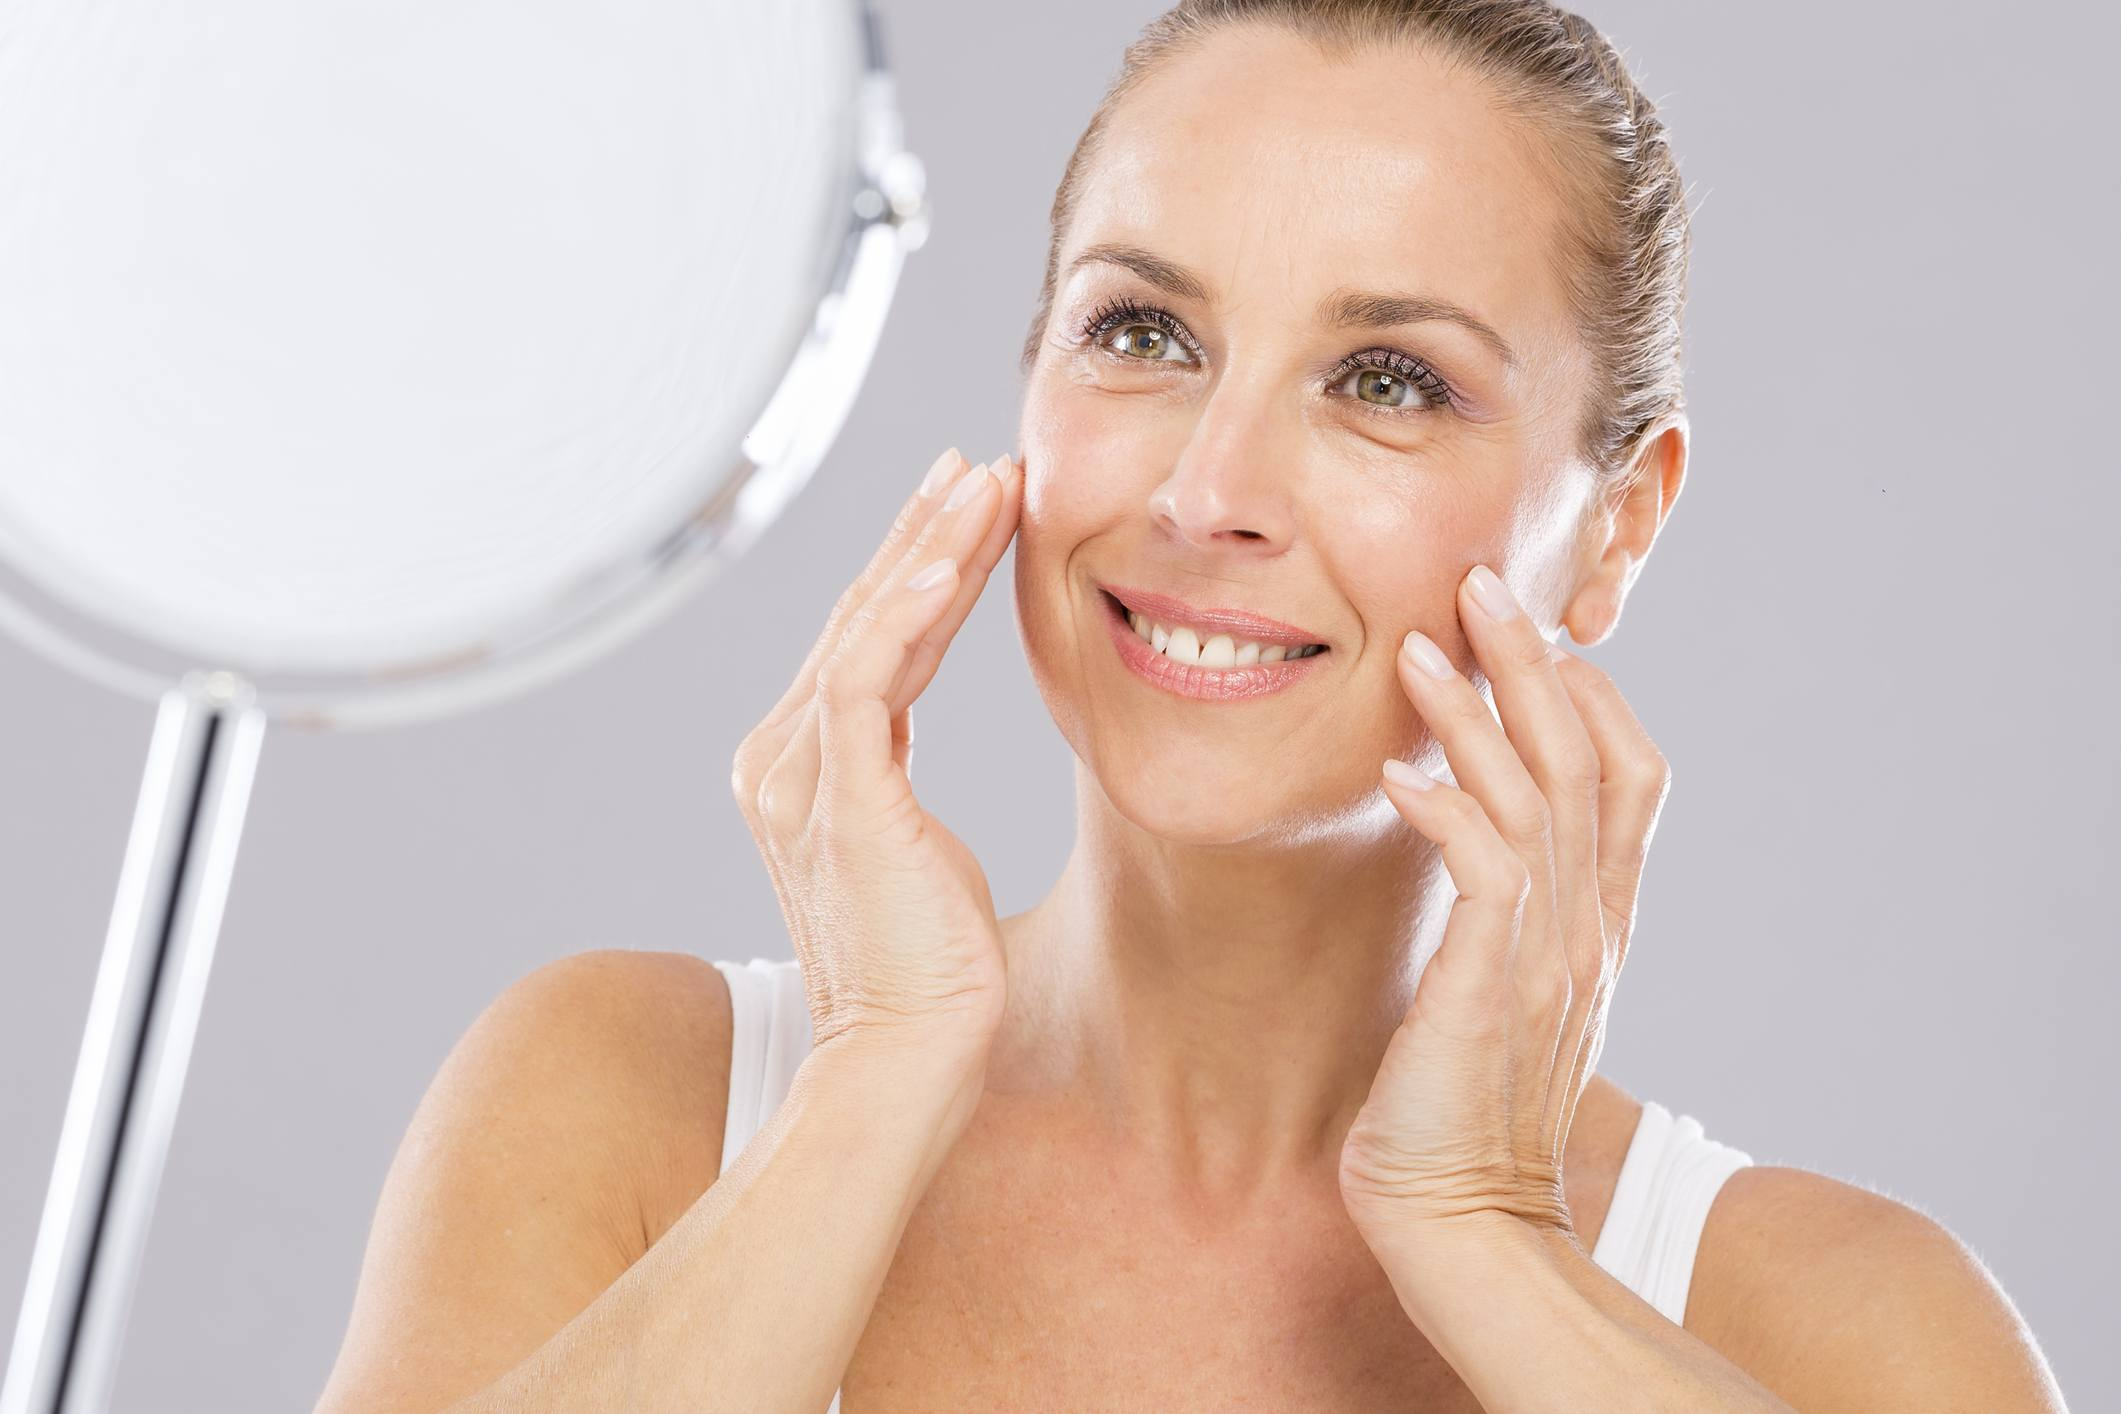 Mature woman applying moisturizer to her skin in a mirror